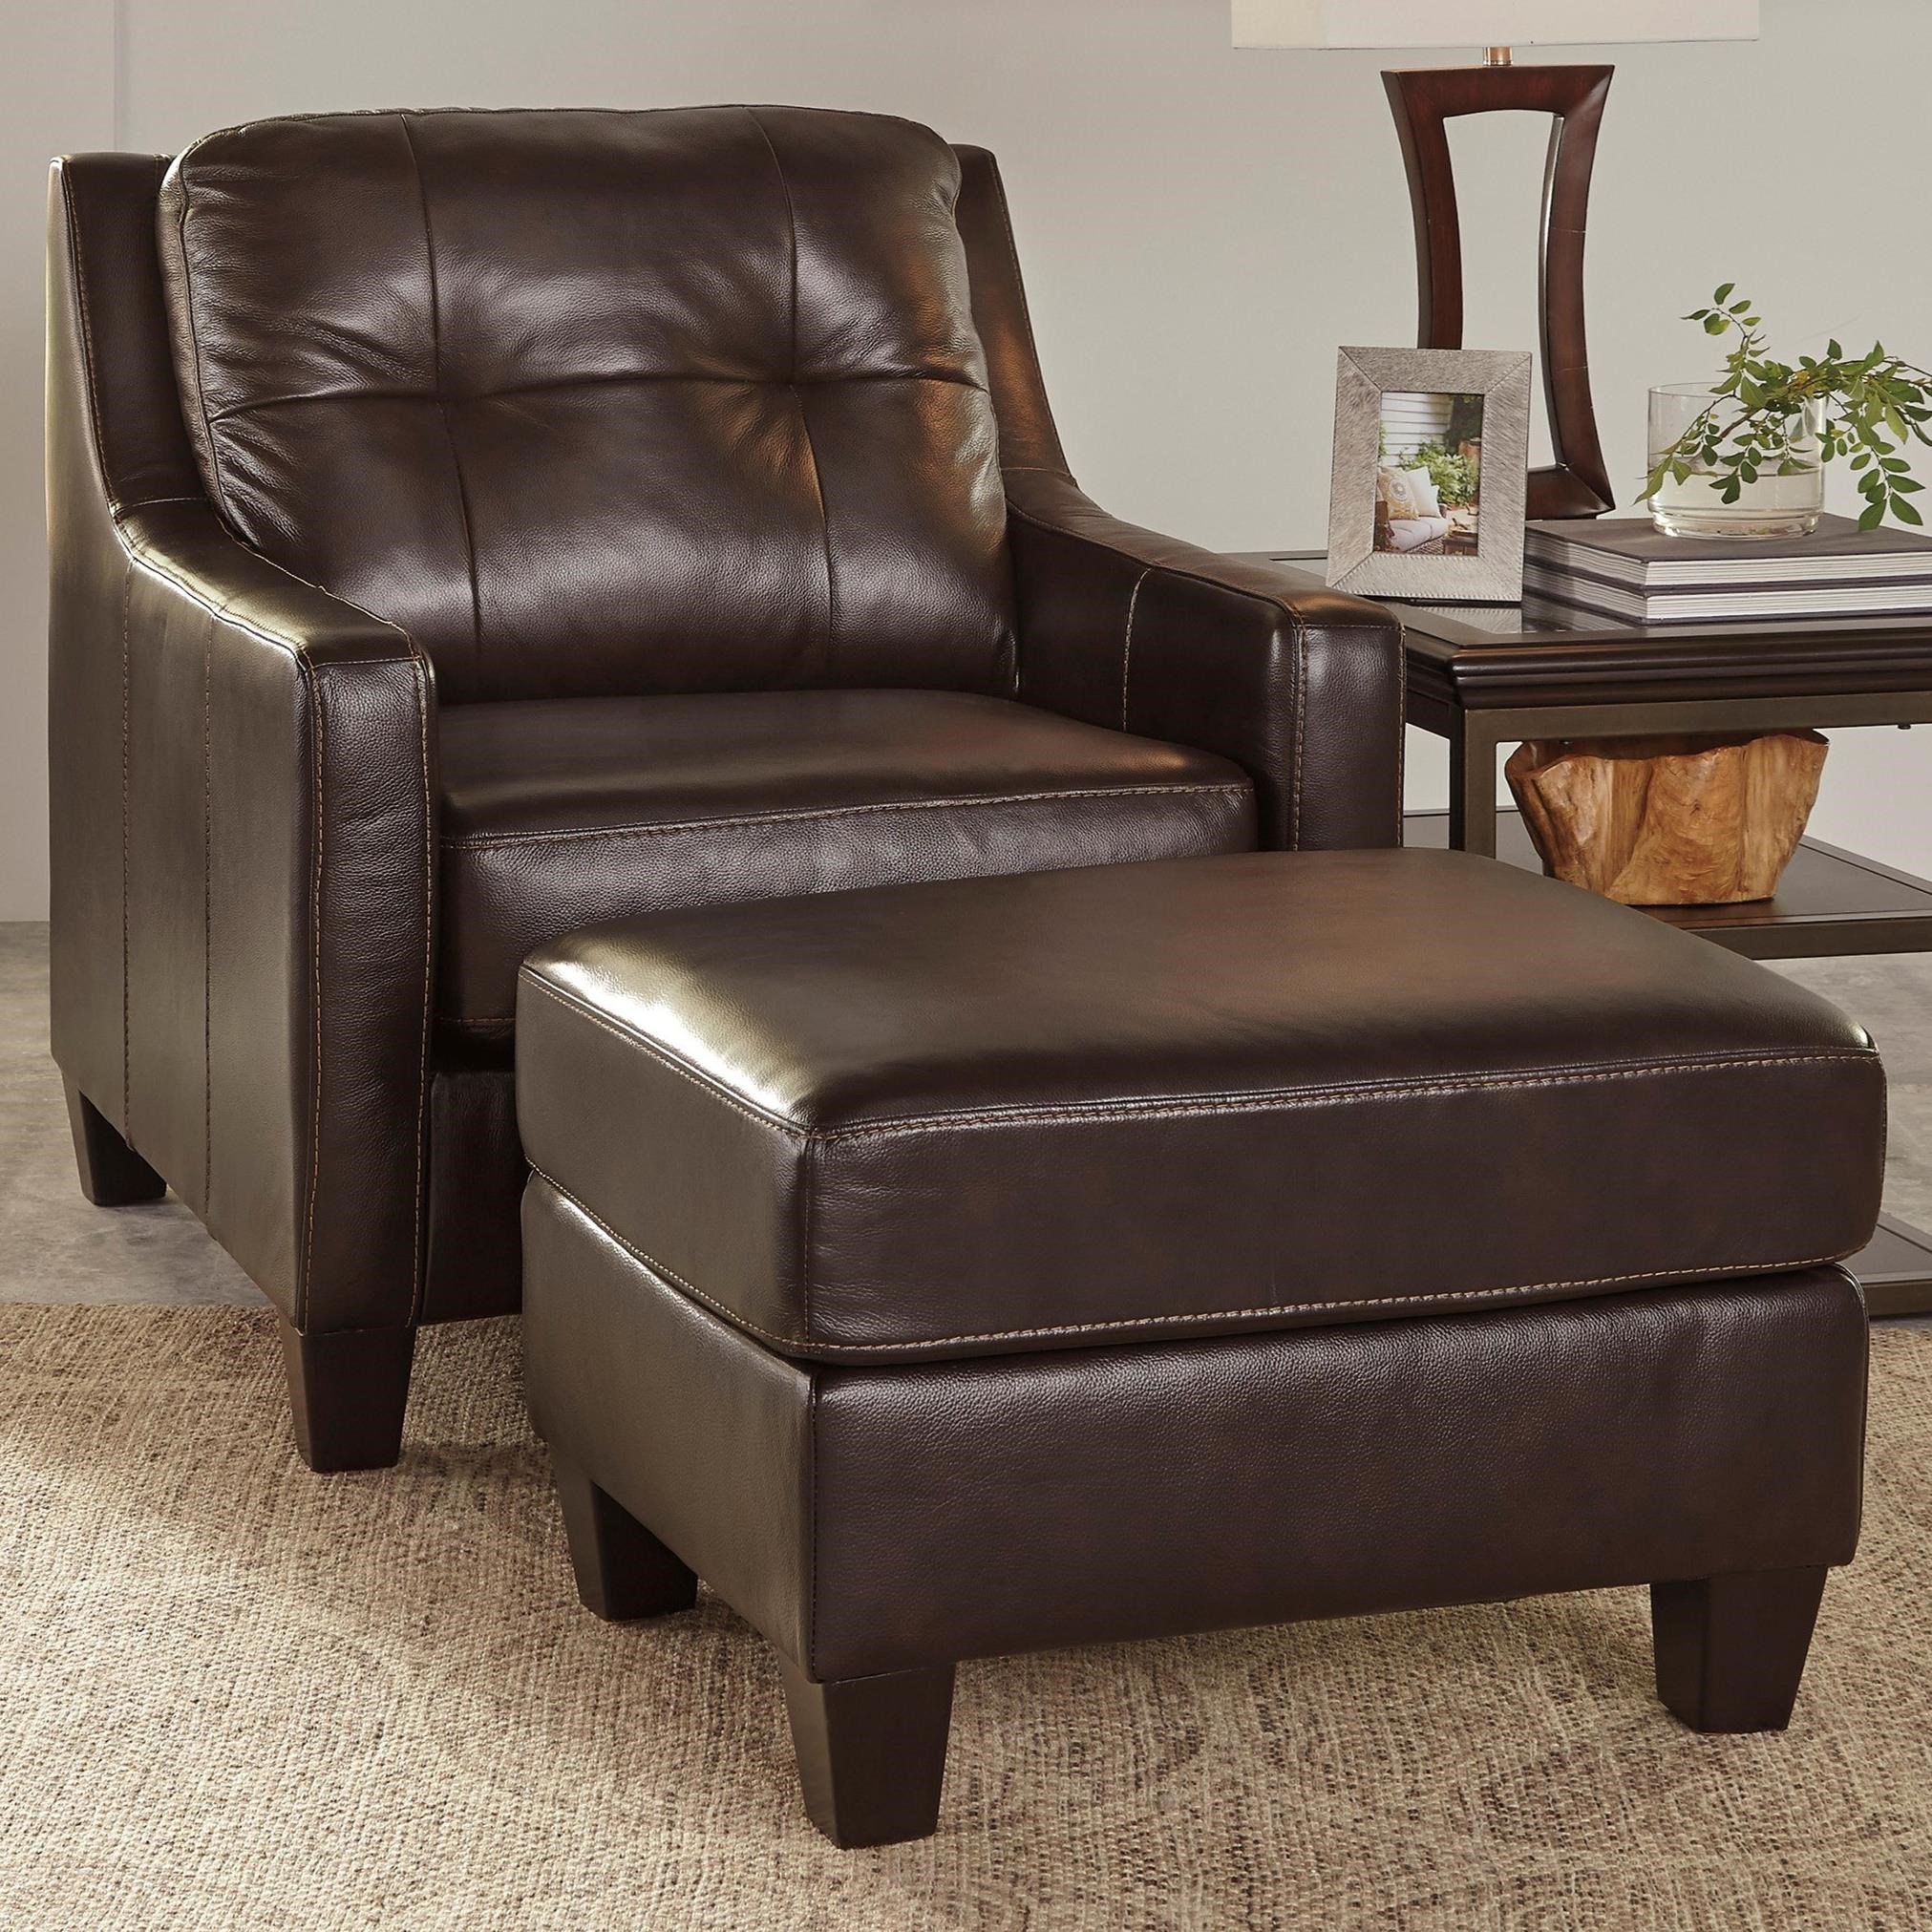 recliner item and chair set zero products modern number leather with flexsteel co west reclining latitudes gravity ottoman